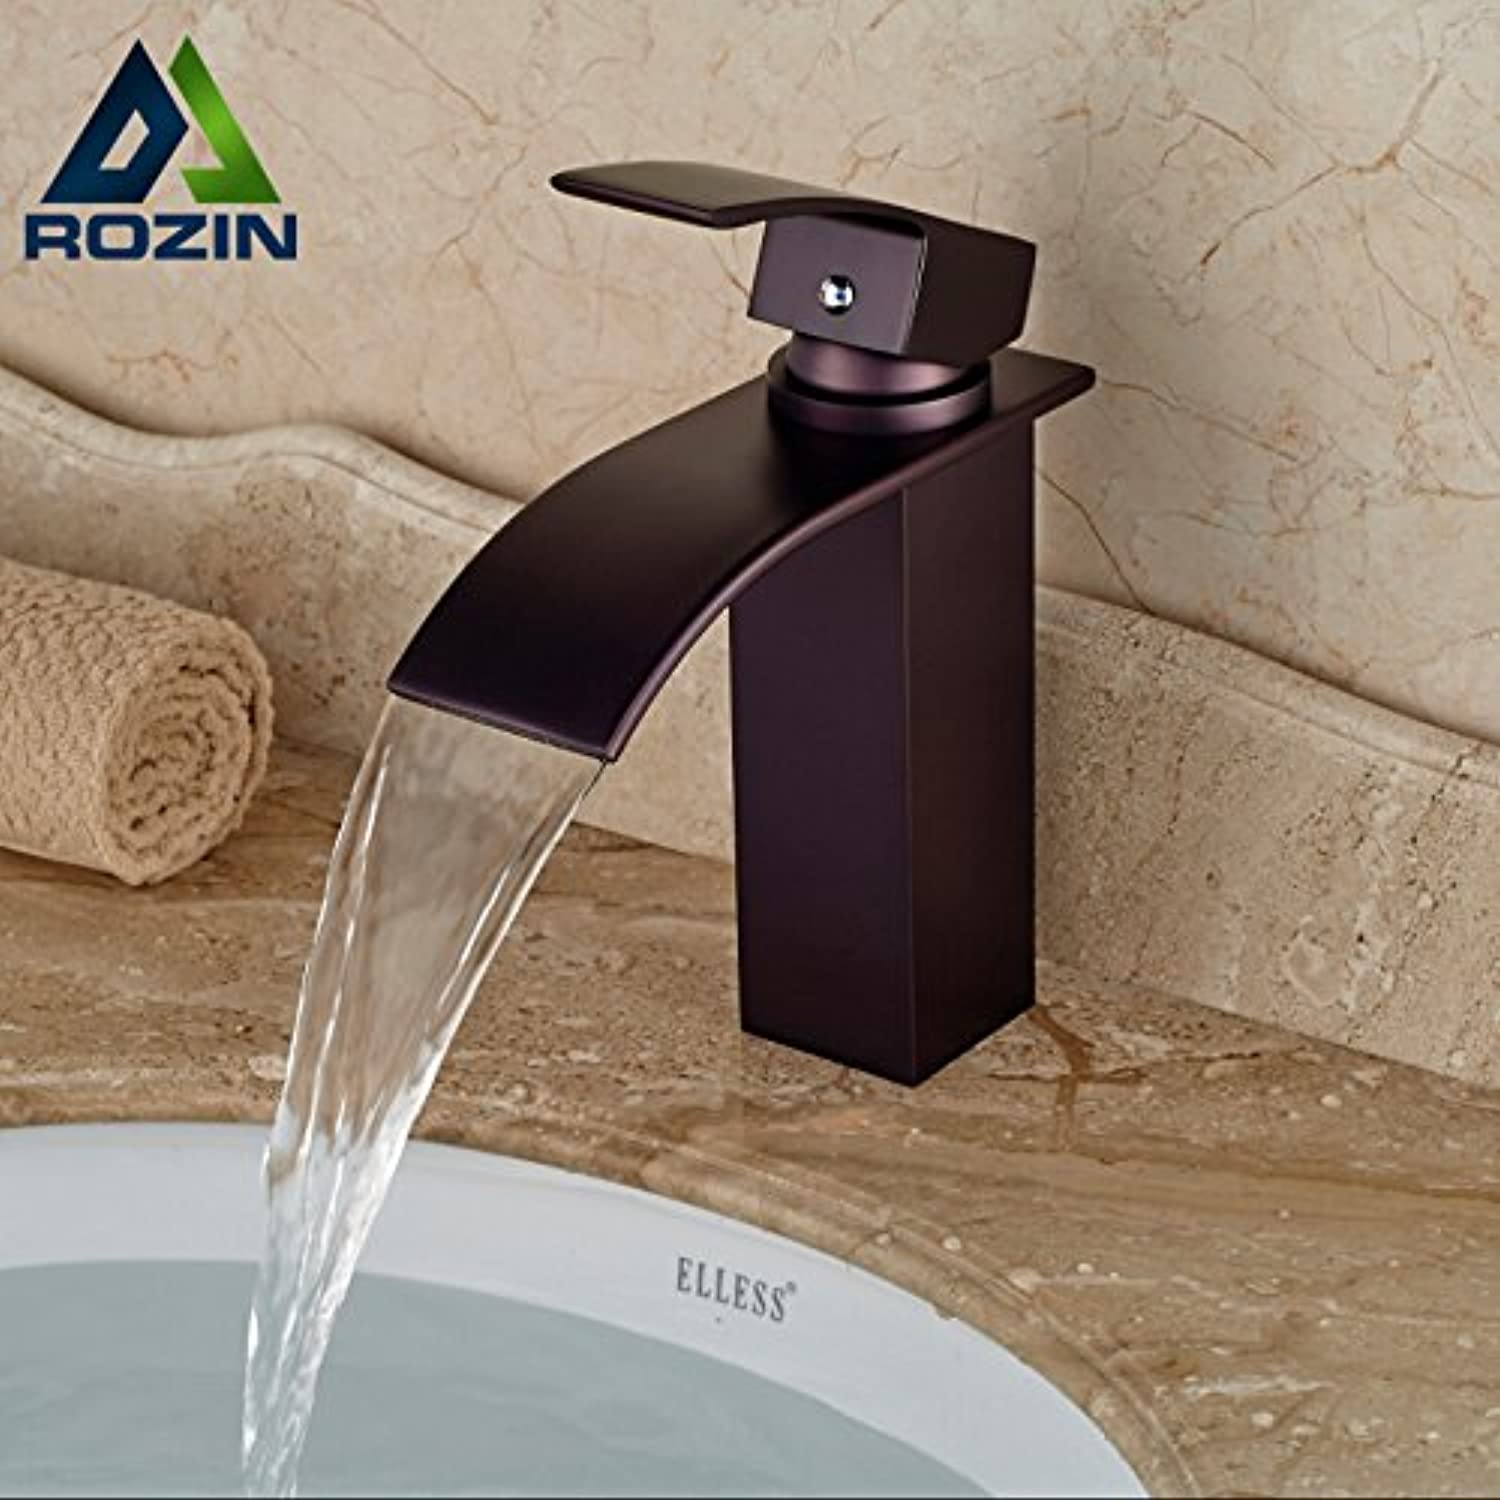 Tourmeler Good Quality Oil Rubbed Bronze Bathroom Sink Vanity Mixer Faucet Waterfall Basin Water Taps Free Shipping